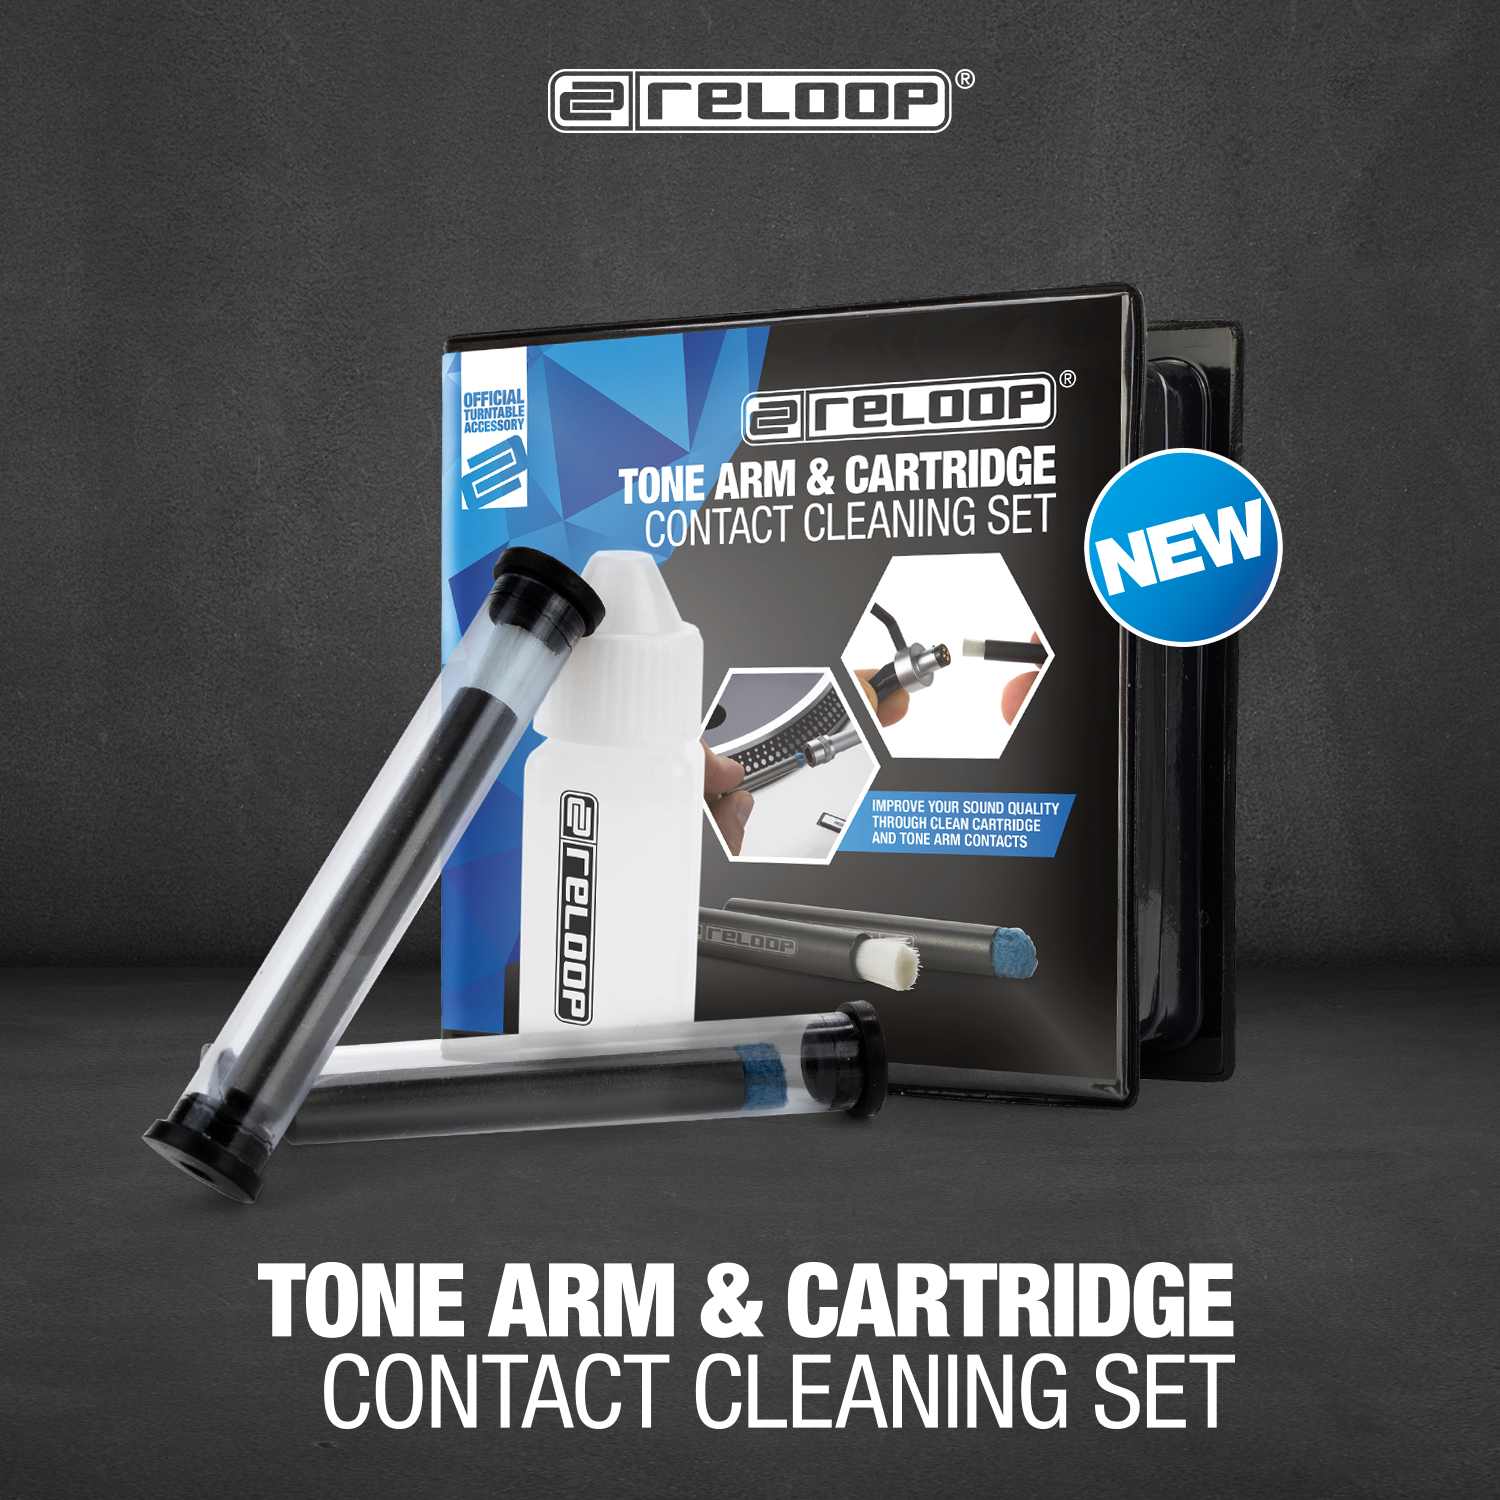 NEW: RELOOP TONE ARM & CARTRIDGE CONTACT CLEANING SET